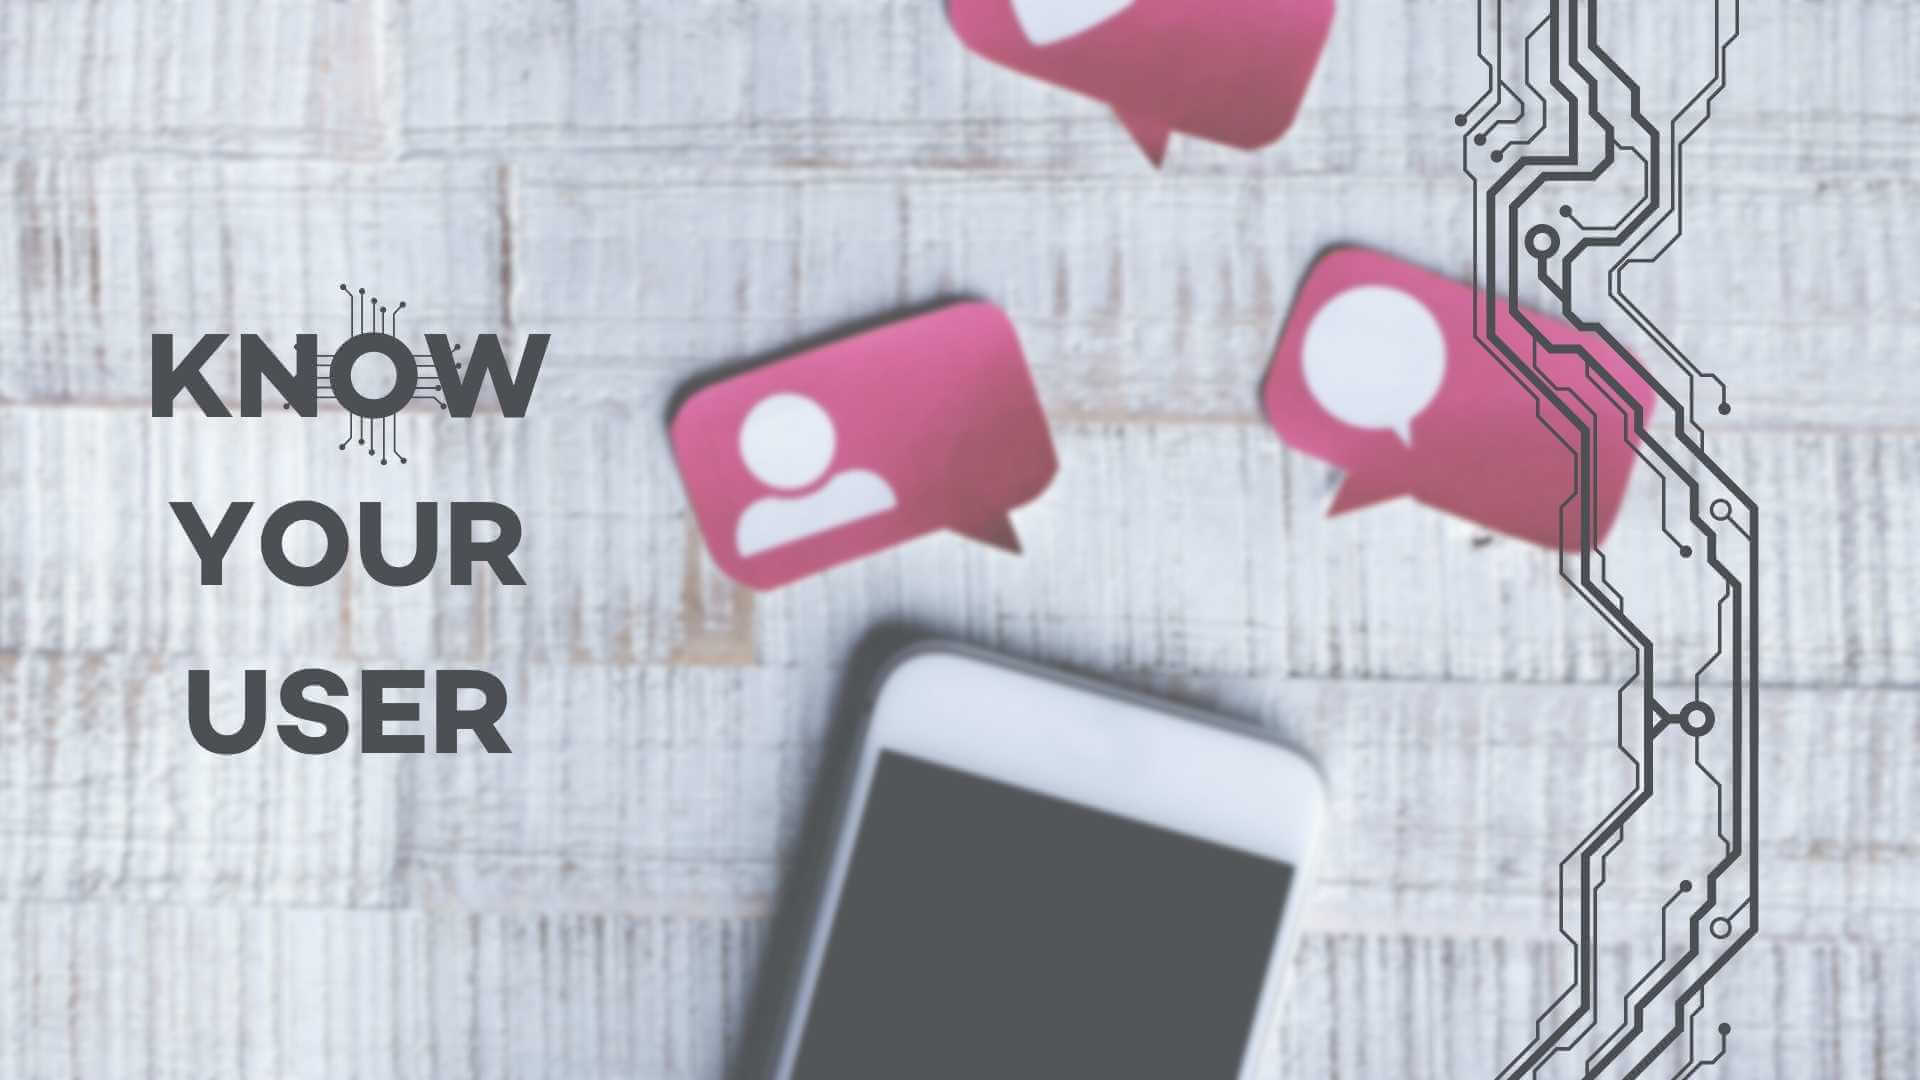 know your user text next to a smart phone